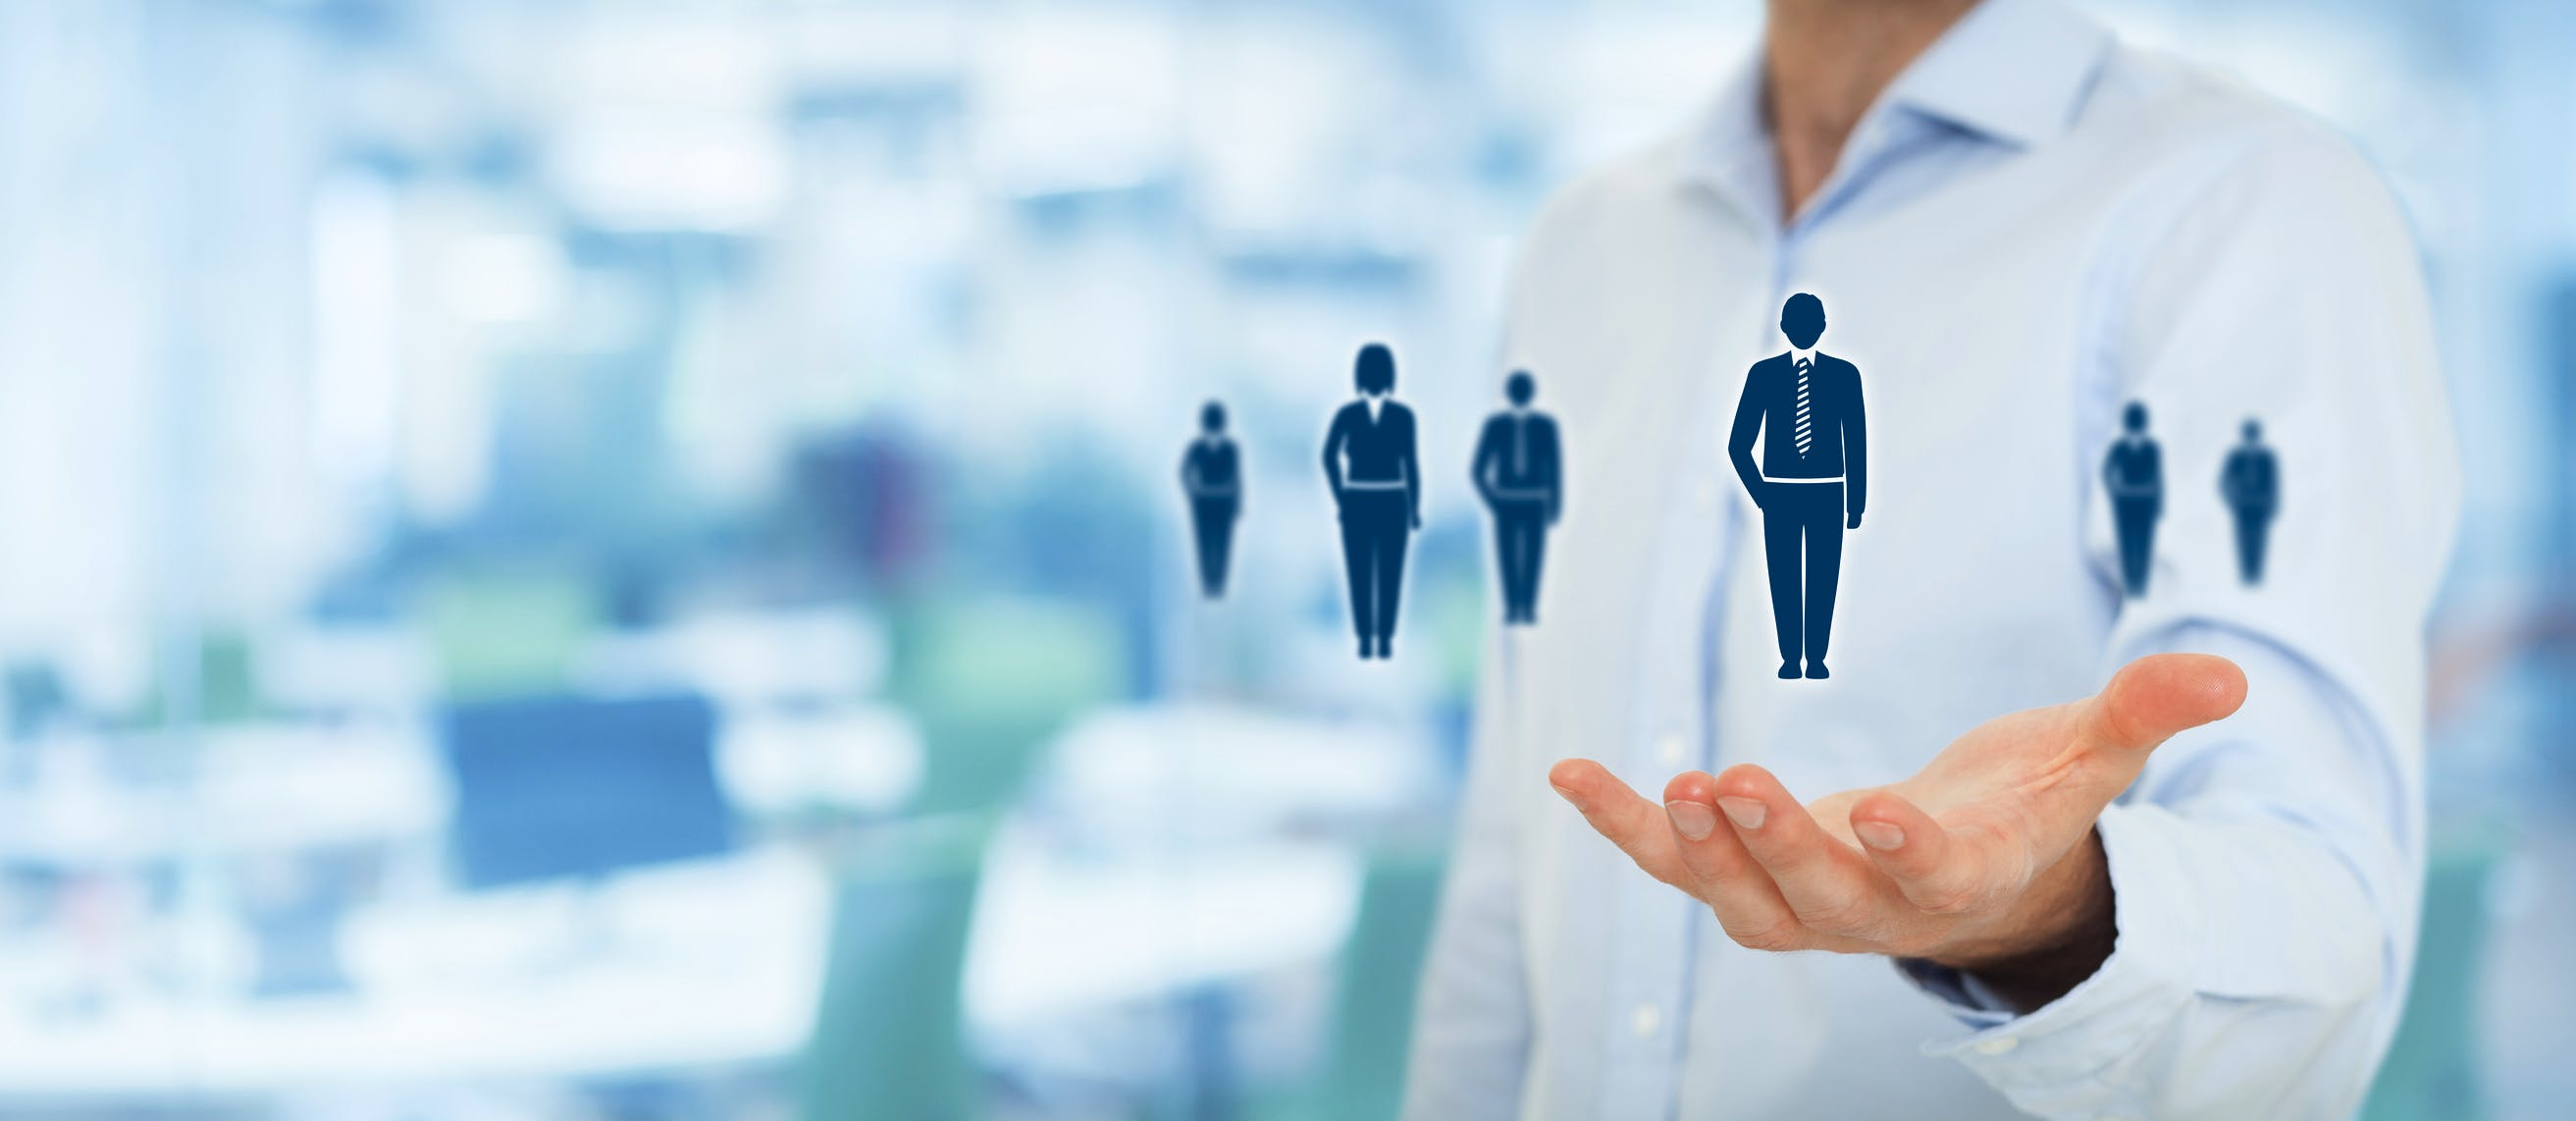 Human resources pool, customer care, care for employees, labor union, employment agency and marketing segmentation concepts. Gesture of businessman or personnel and icons representing group of people. Wide banner composition with office in background.